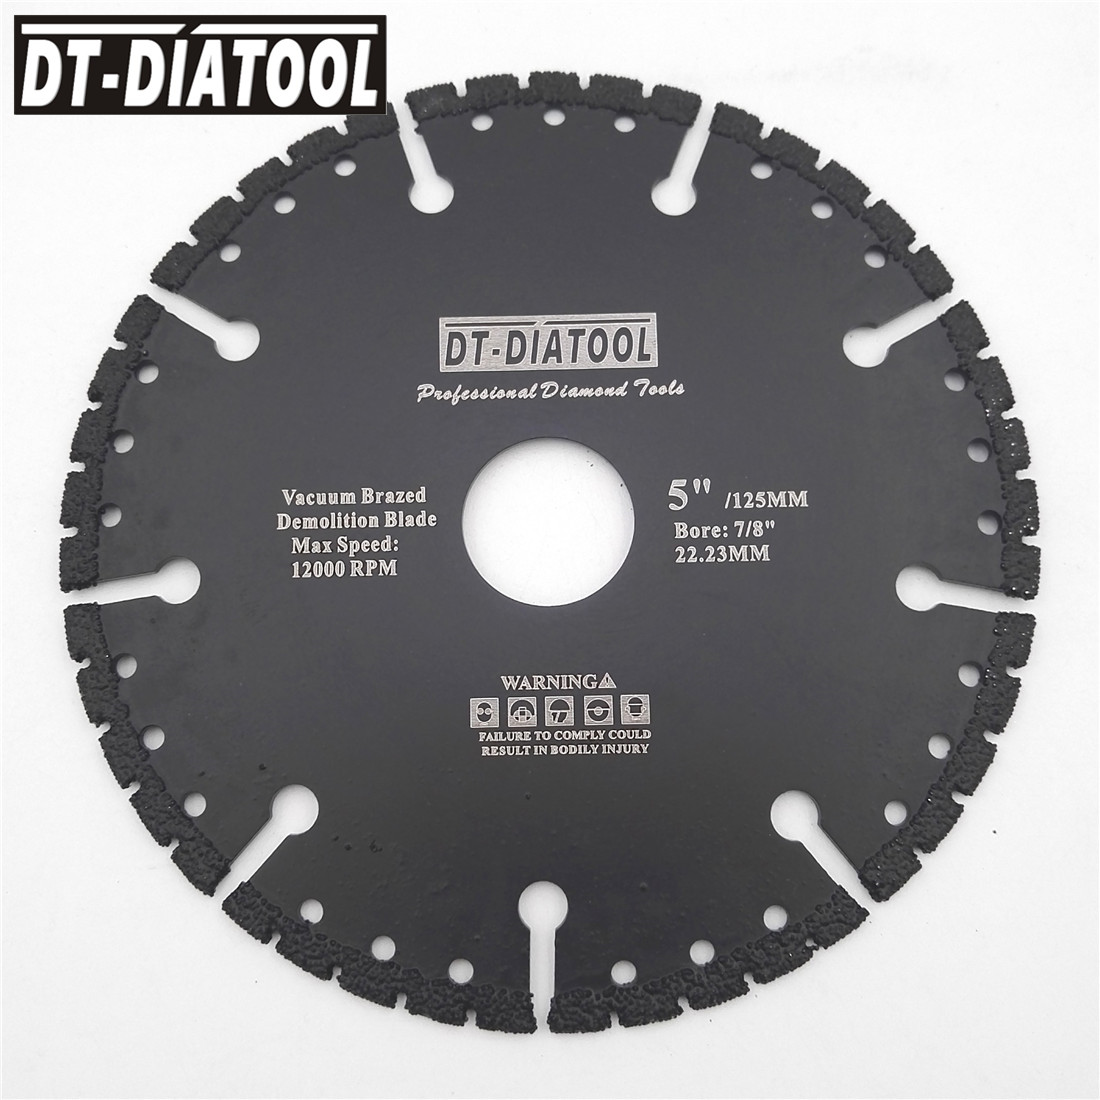 DT-DIATOOL Vacuum Brazed Diamond Saw Blade All Purpose Demolition Blade Cutting Disc Steel Metal Stone Cast Iron Rebar Aluminum